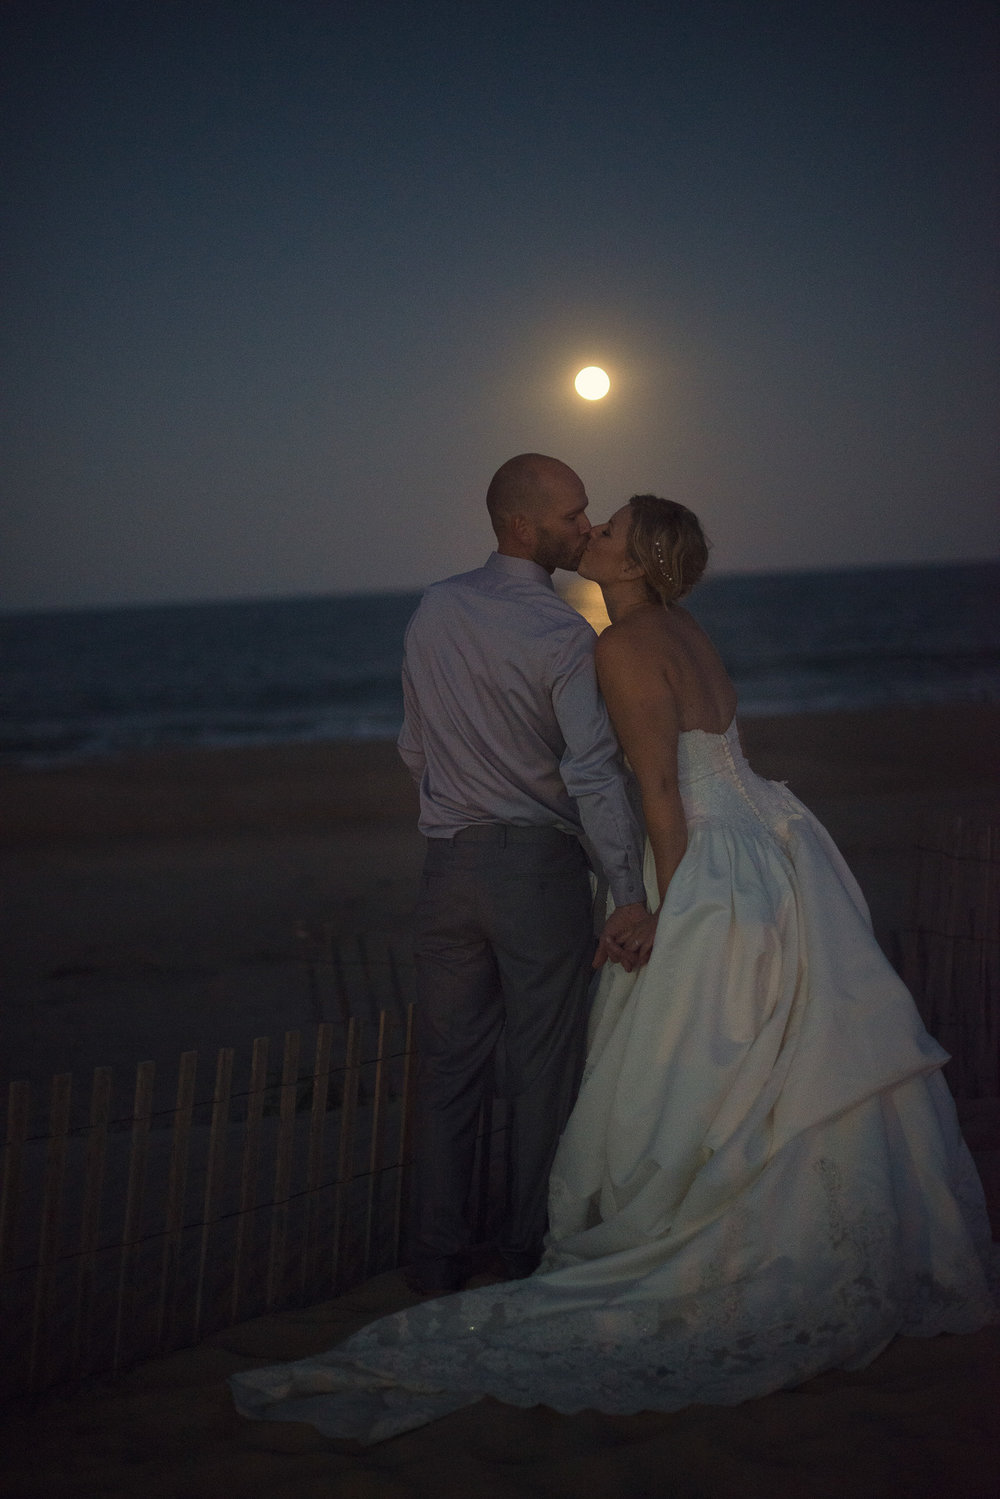 Wedding couple kiss night moonlight sand shore beach delaware THPHOTO